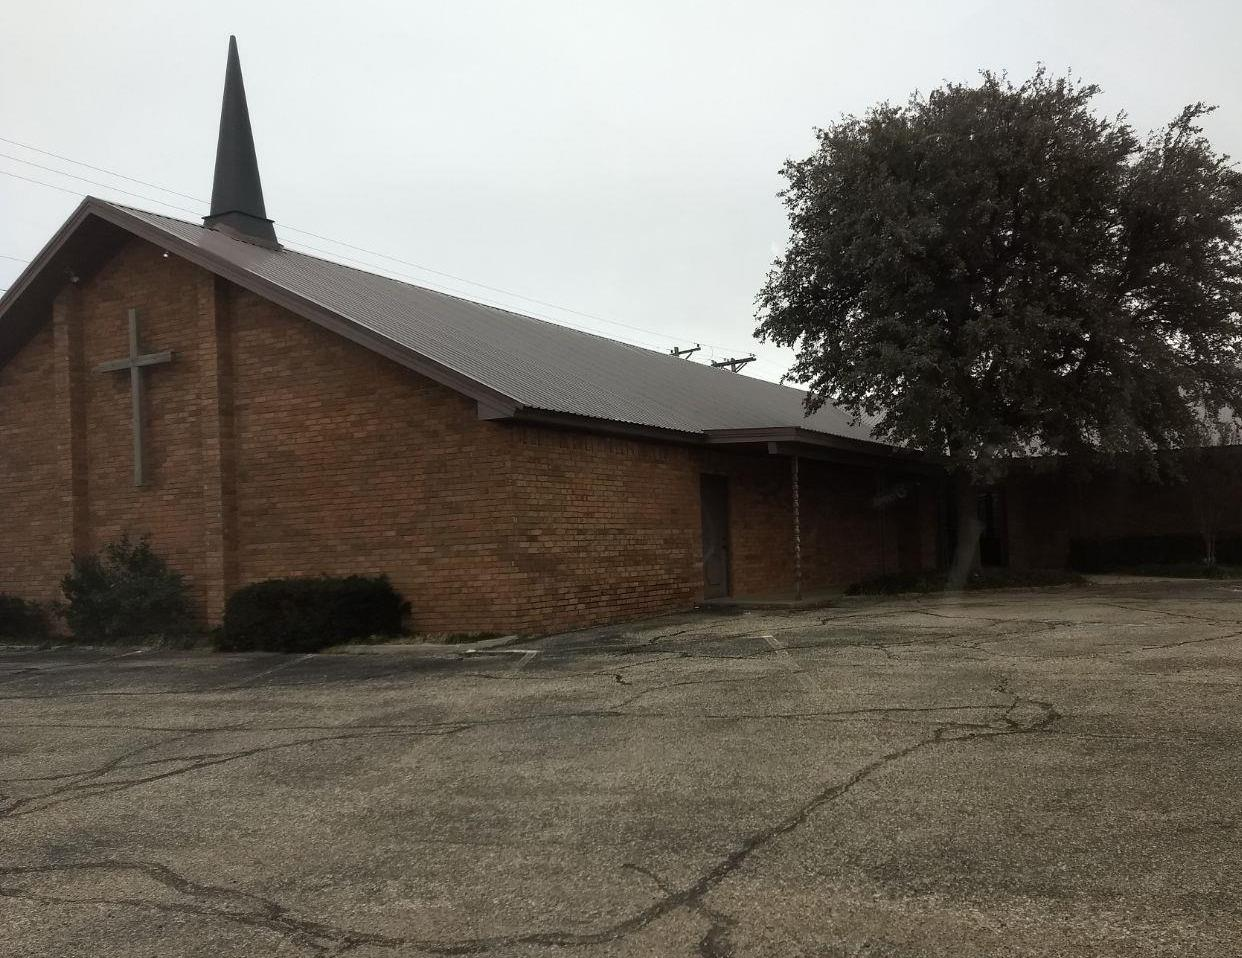 This former church building is waiting for the right person or organization to put it to use. It is in great condition and could used for almost anything. This building boasts just over 5900 sq ft of space which includes a fully operational kitchen. Check it out today. Call for a showing.